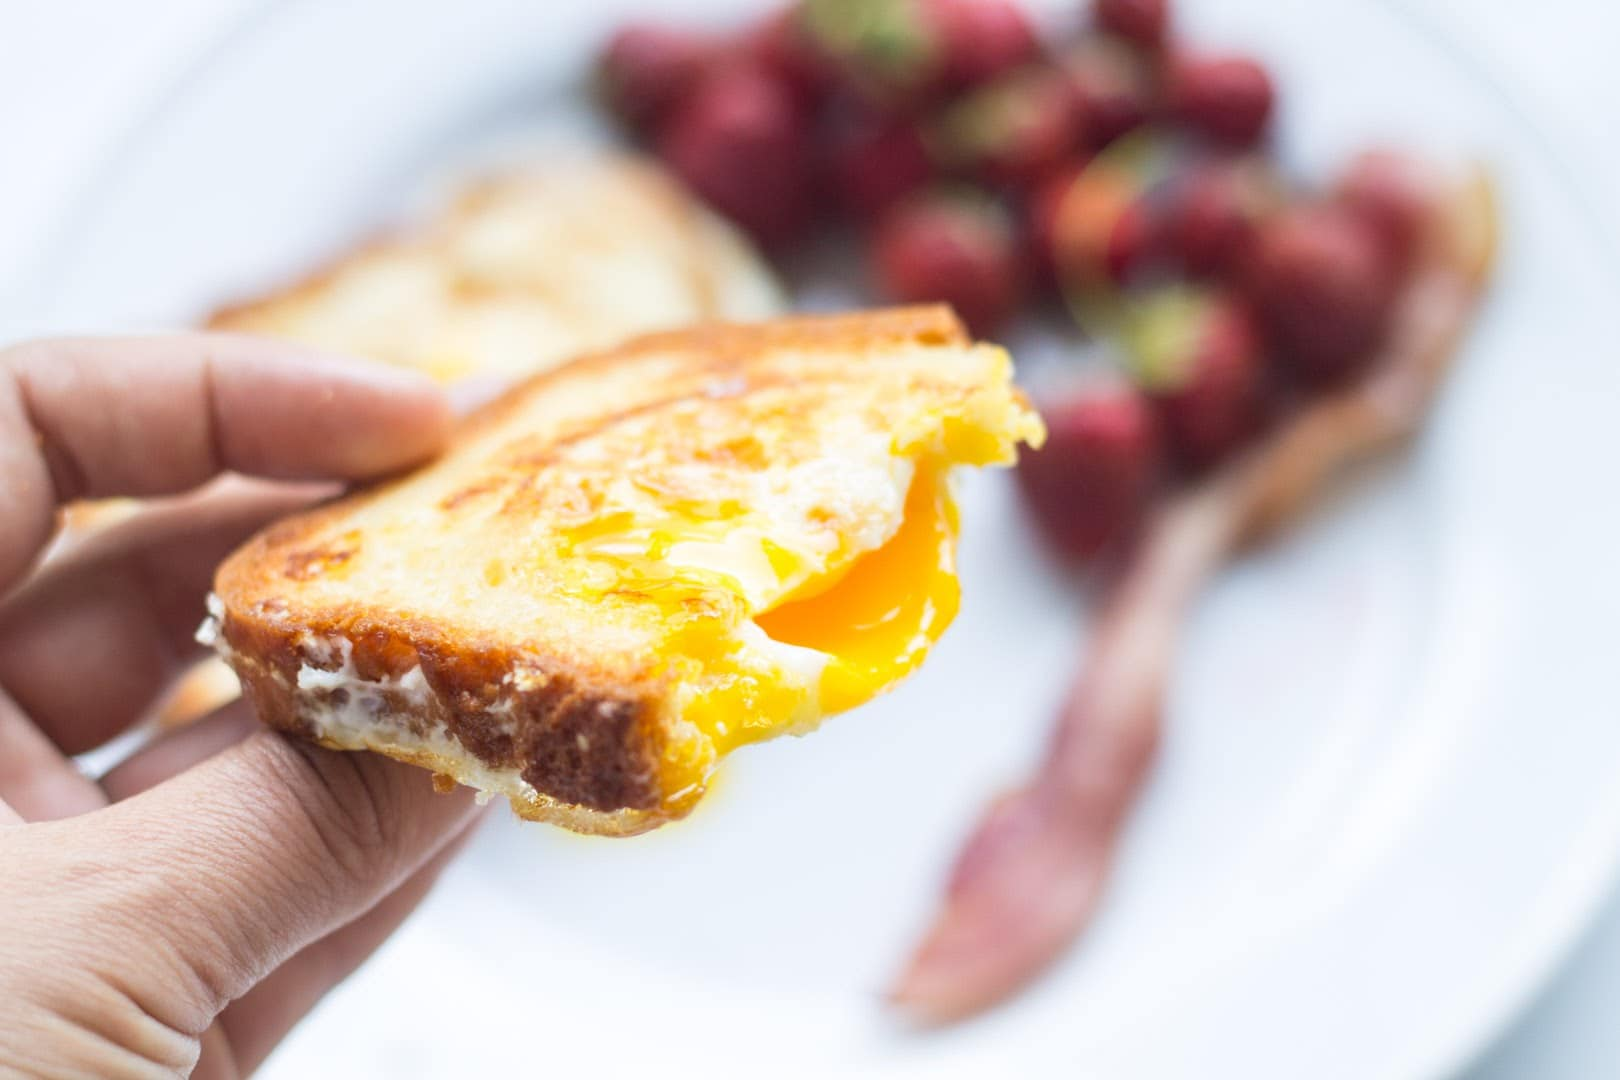 A hand holding a slice of toasted bread containing an over-medium egg cooked into the center.